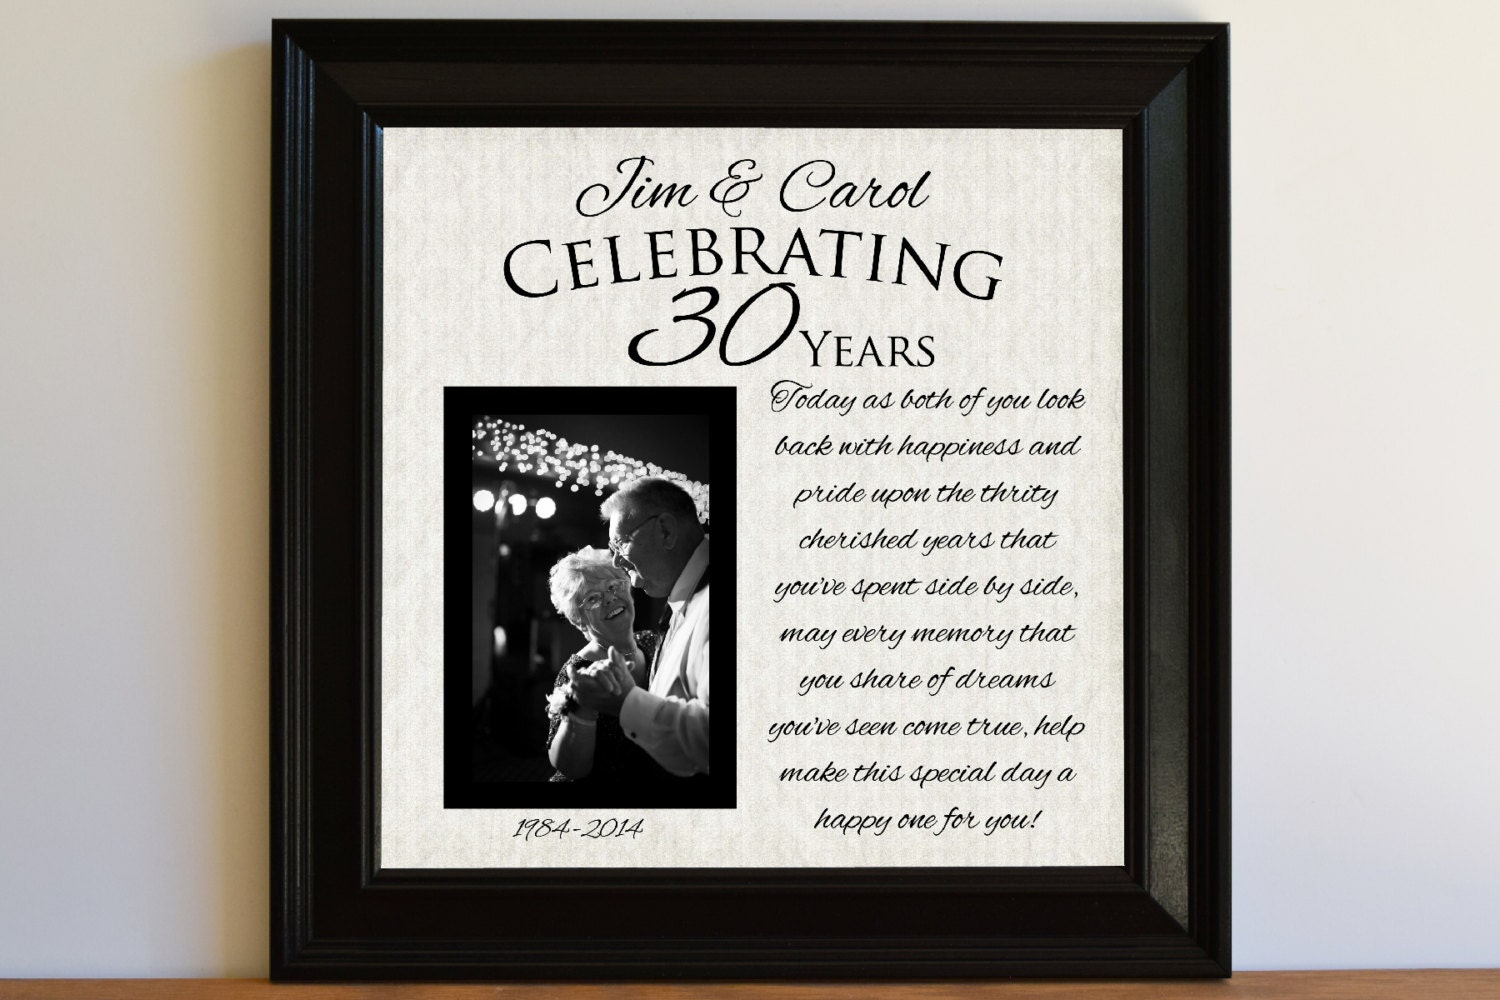 What Are The Gifts For Wedding Anniversaries: Wedding Anniversary Gift 30th Wedding Anniversary Gift